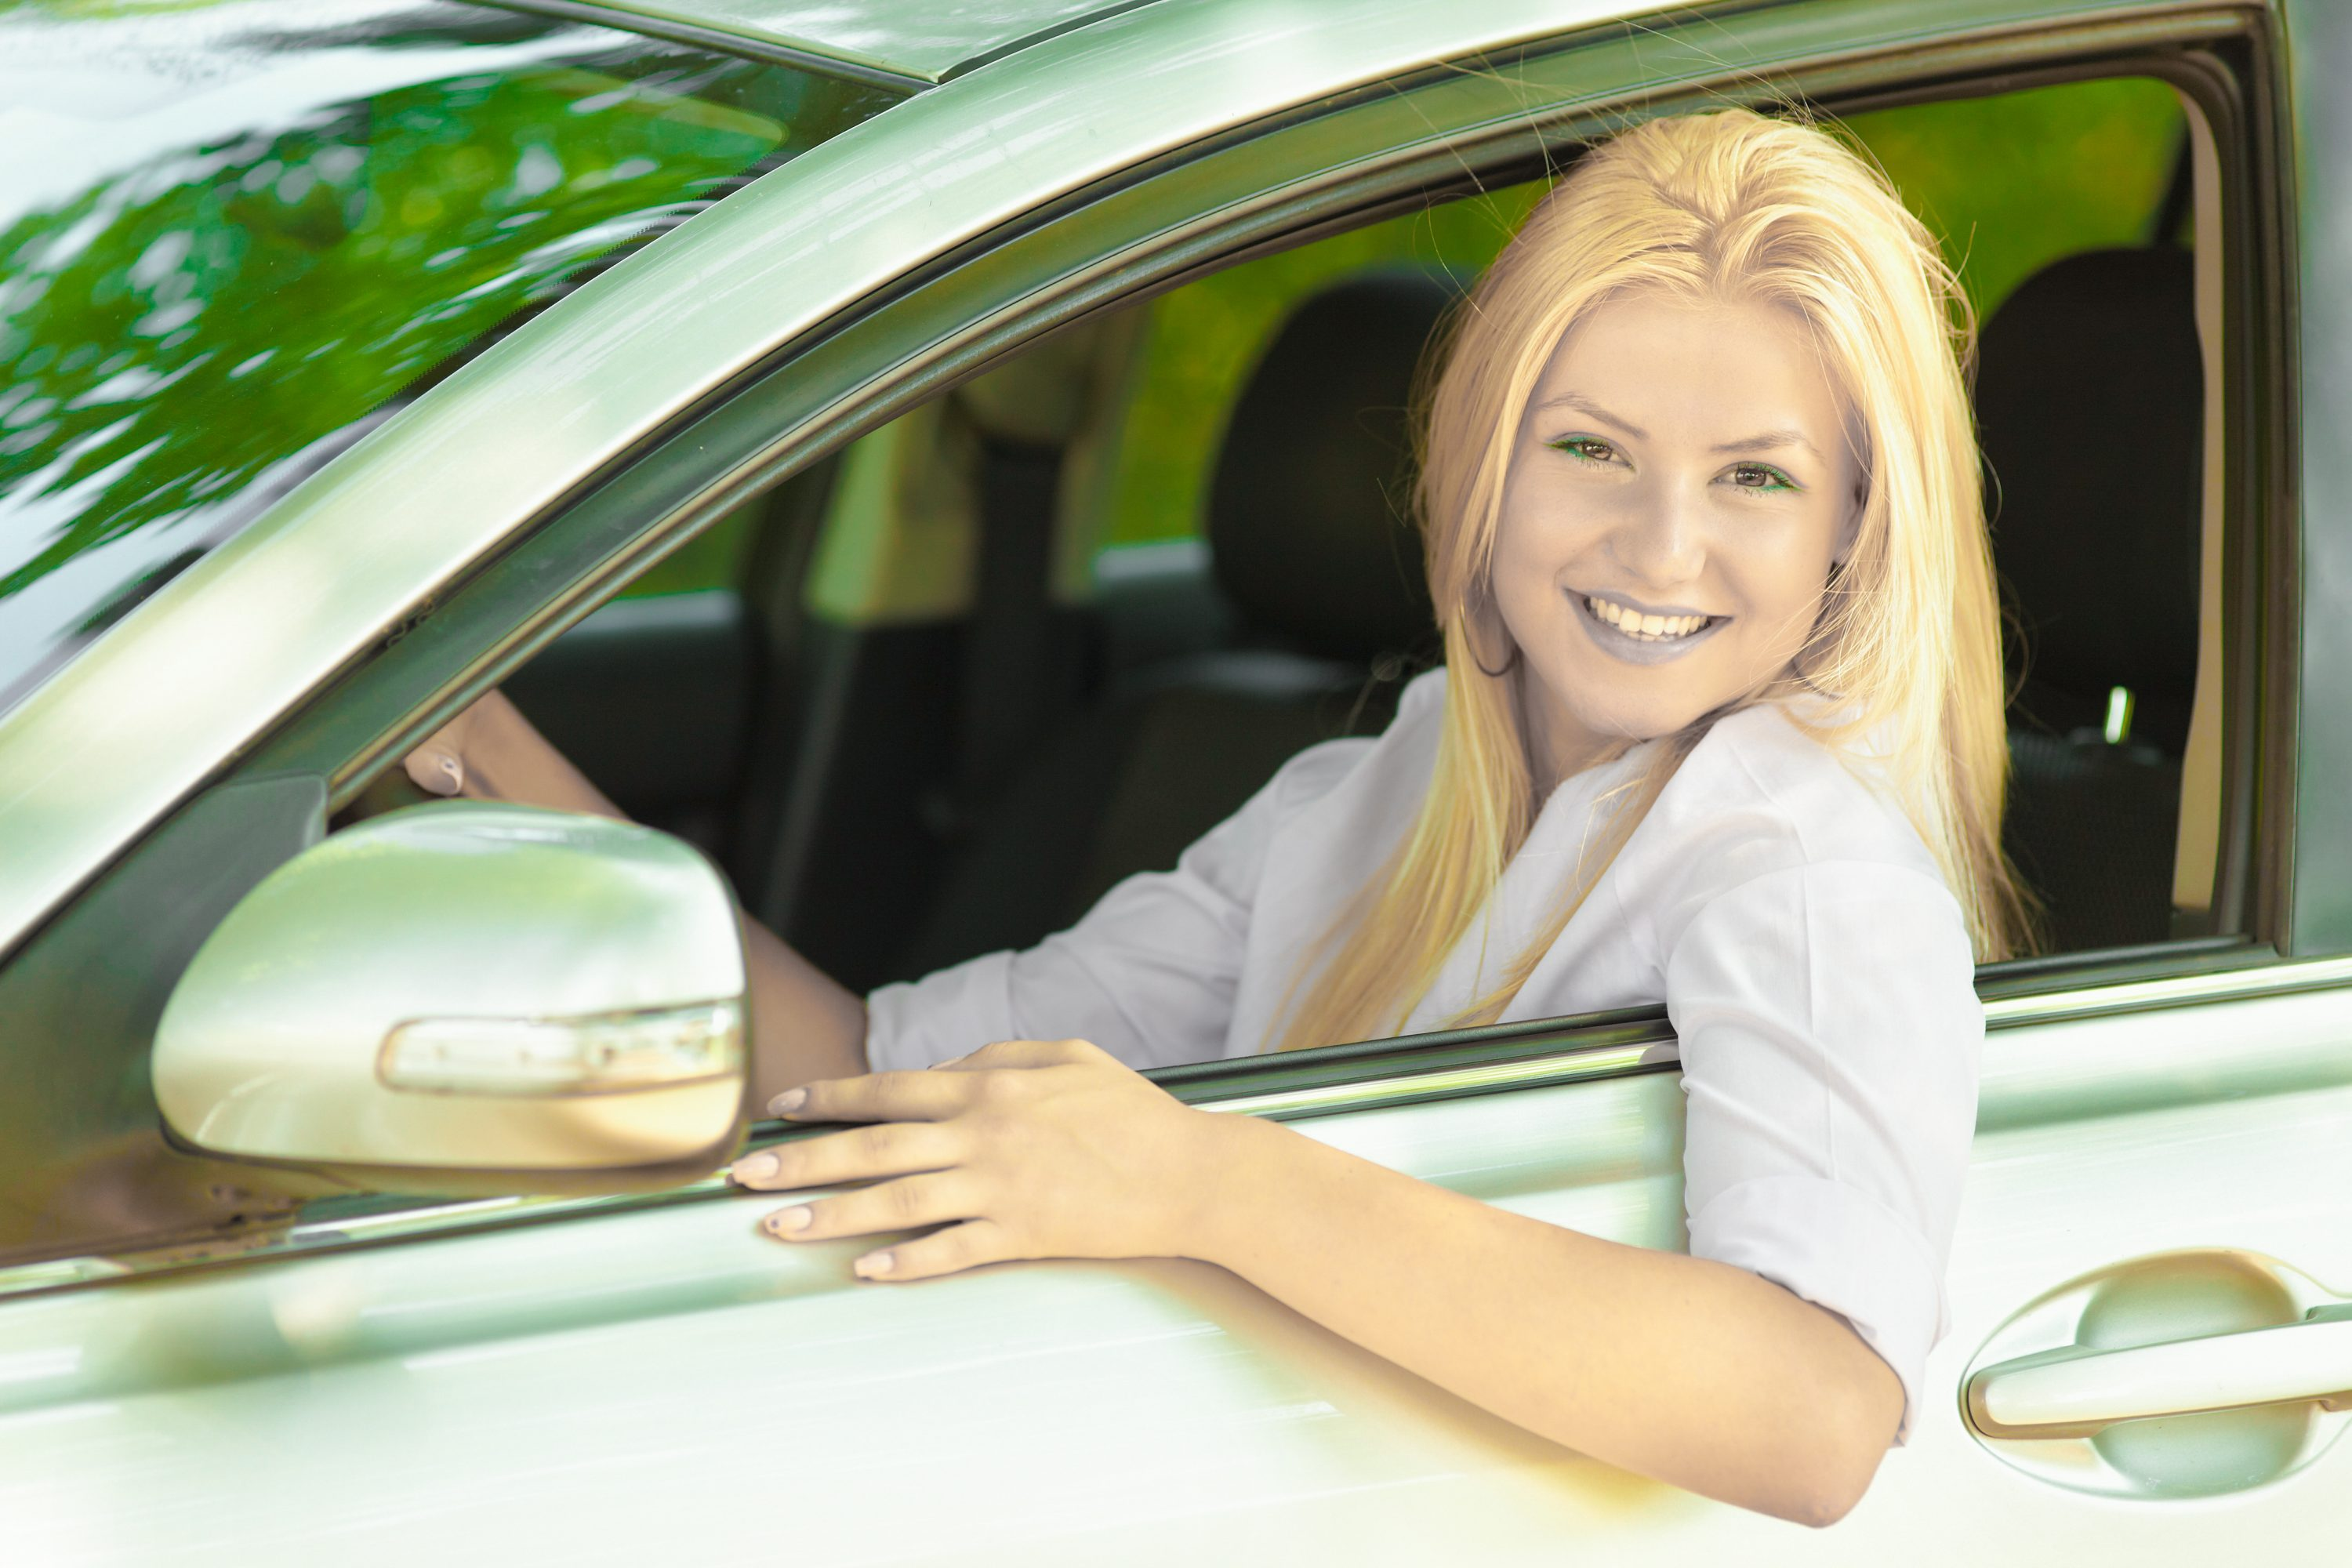 Cheapest Way To Get Car Insurance For New Drivers